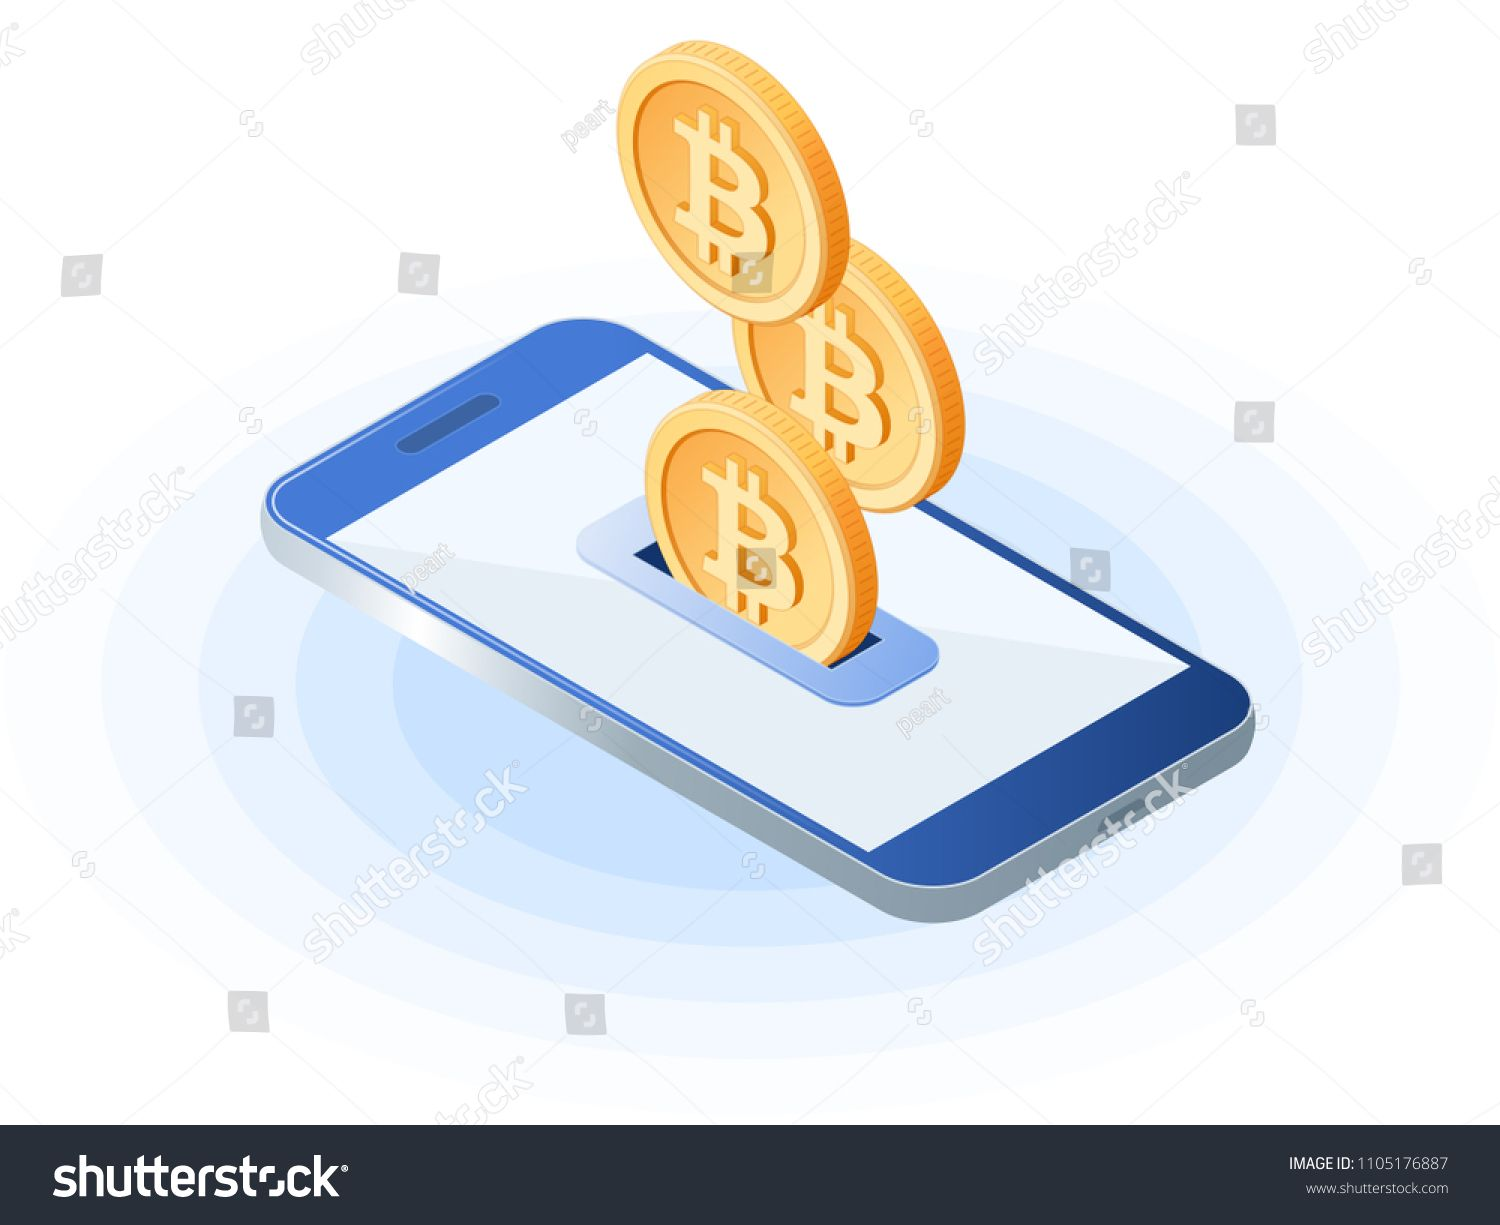 Flat Isometric Ilration Of Bitcoins Droping Into Slot At The Mobile Phone Depositing Money An Account E Commerce Blockchain Cryptocurrency